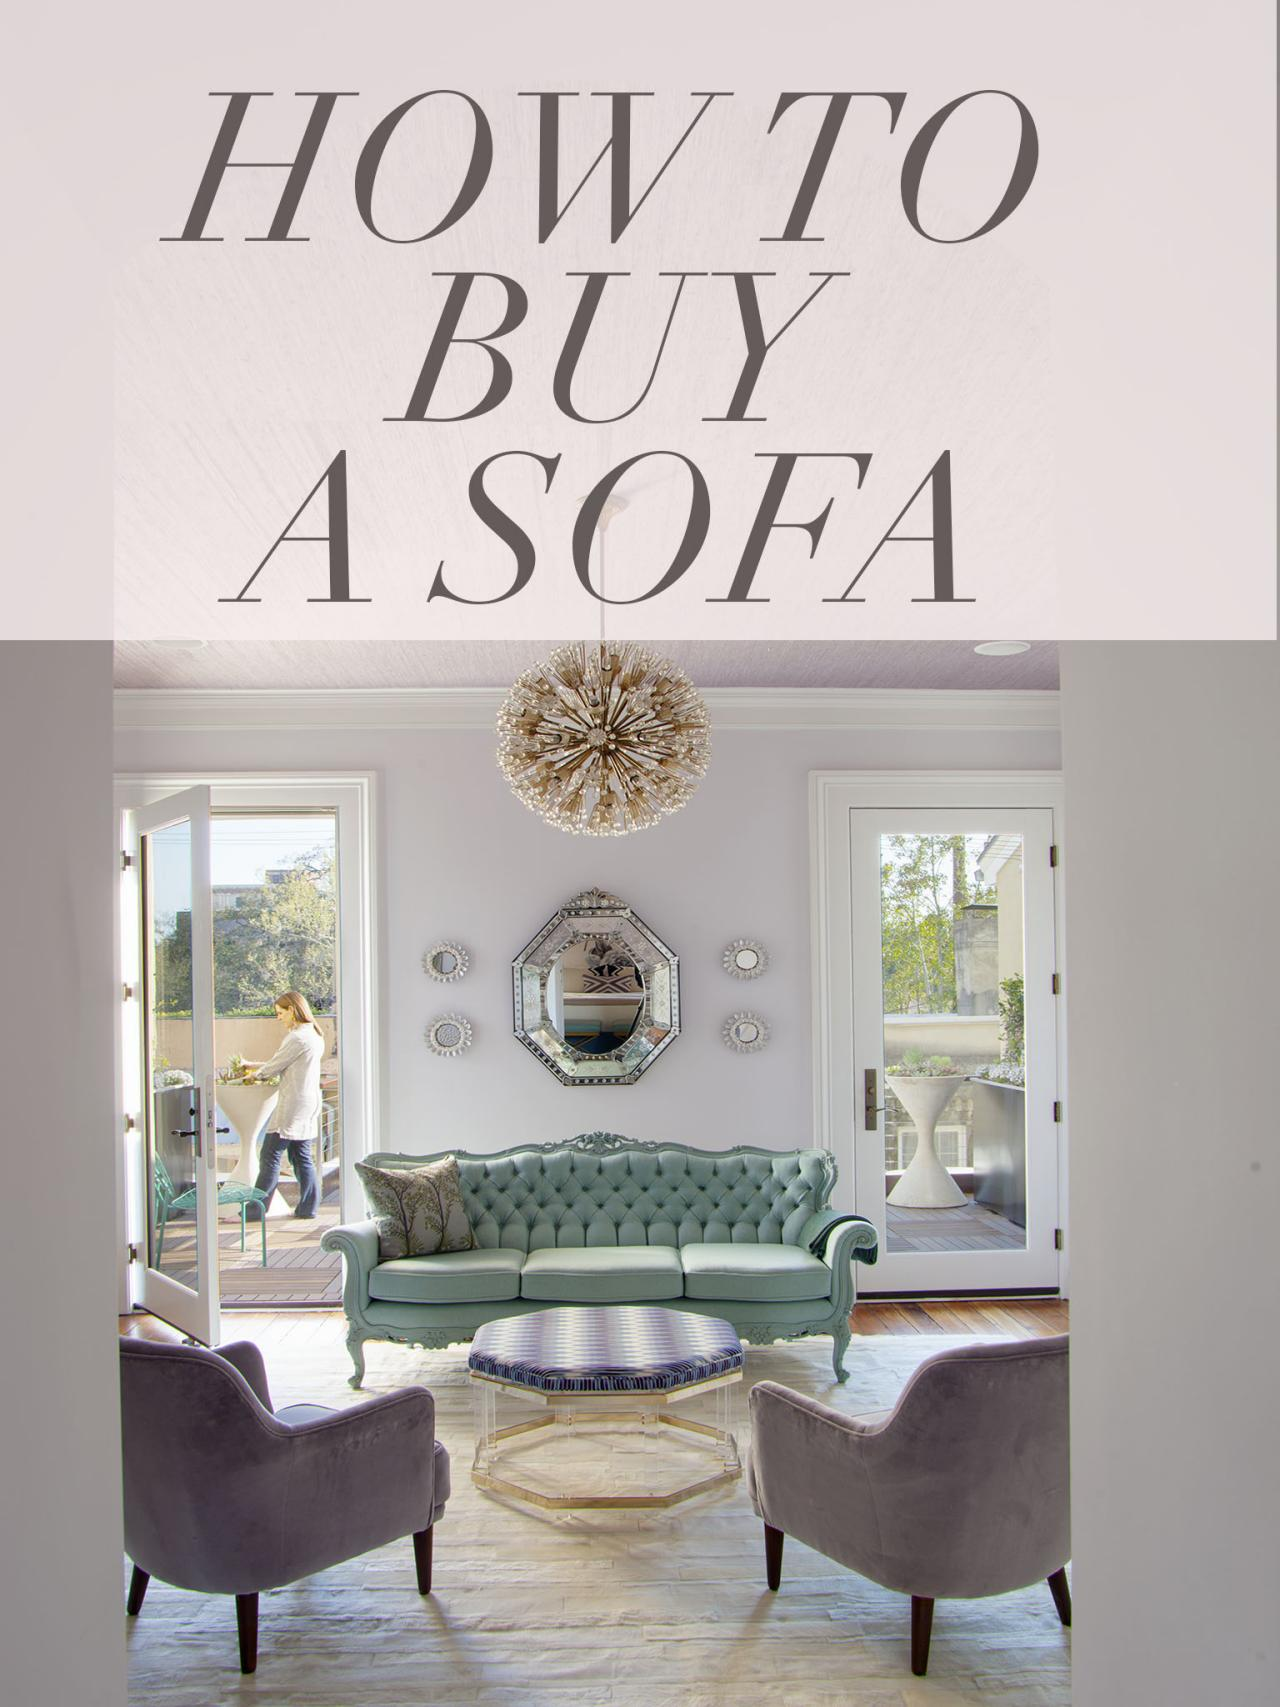 How to Buy a Sofa in 7 Steps | HGTV\'s Decorating & Design Blog | HGTV